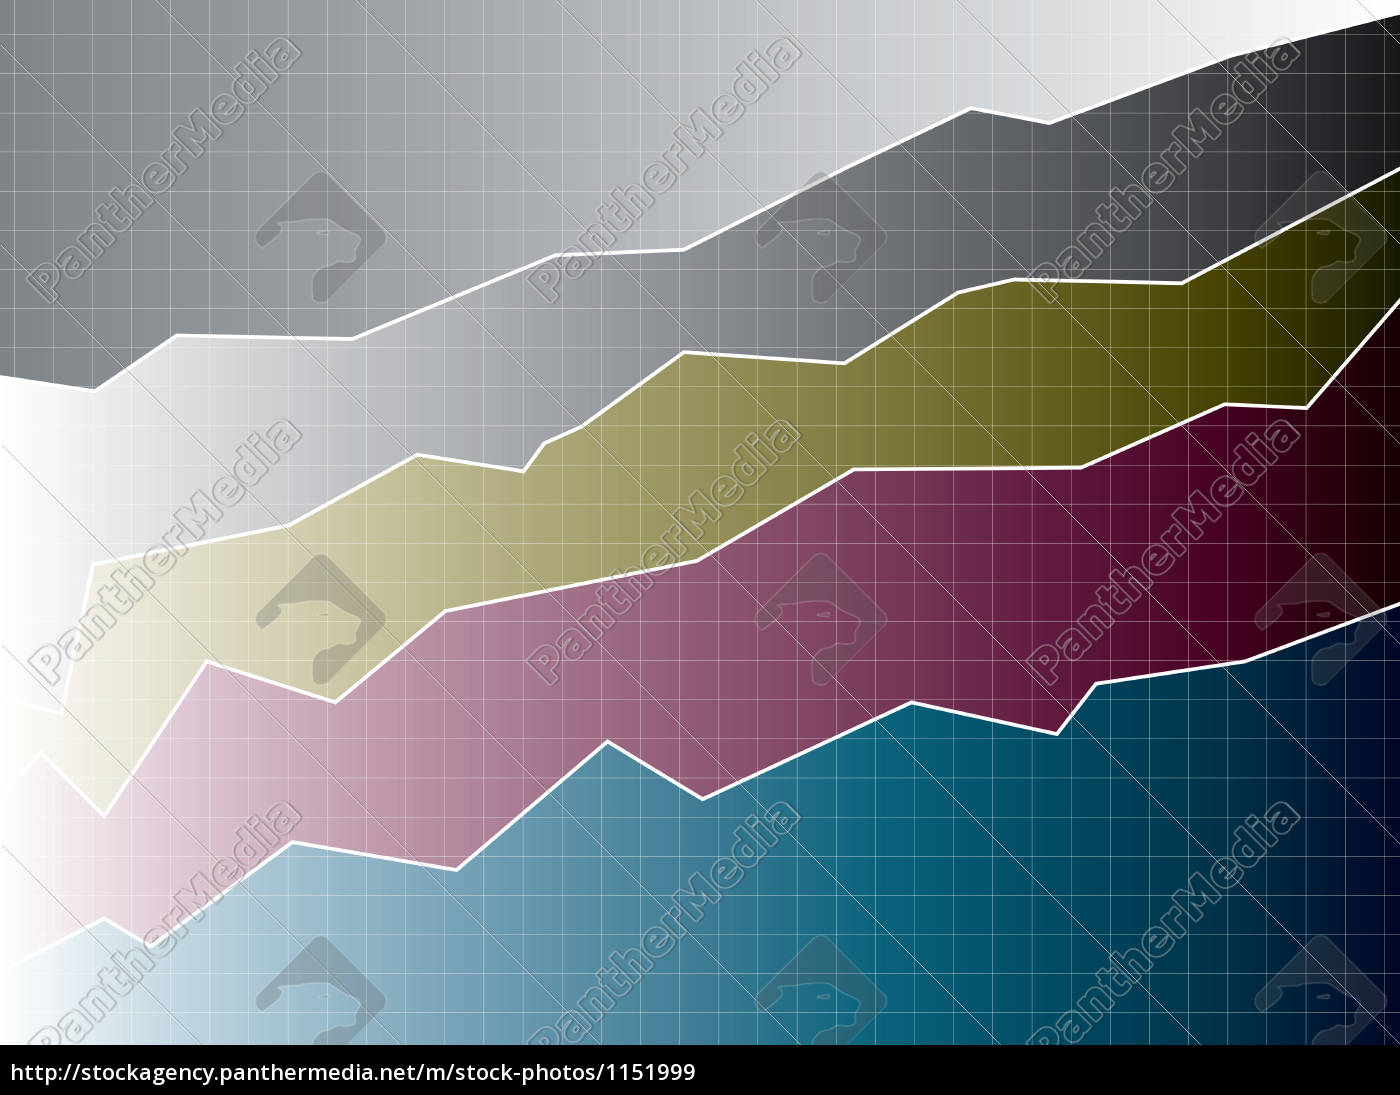 graph, background - 1151999